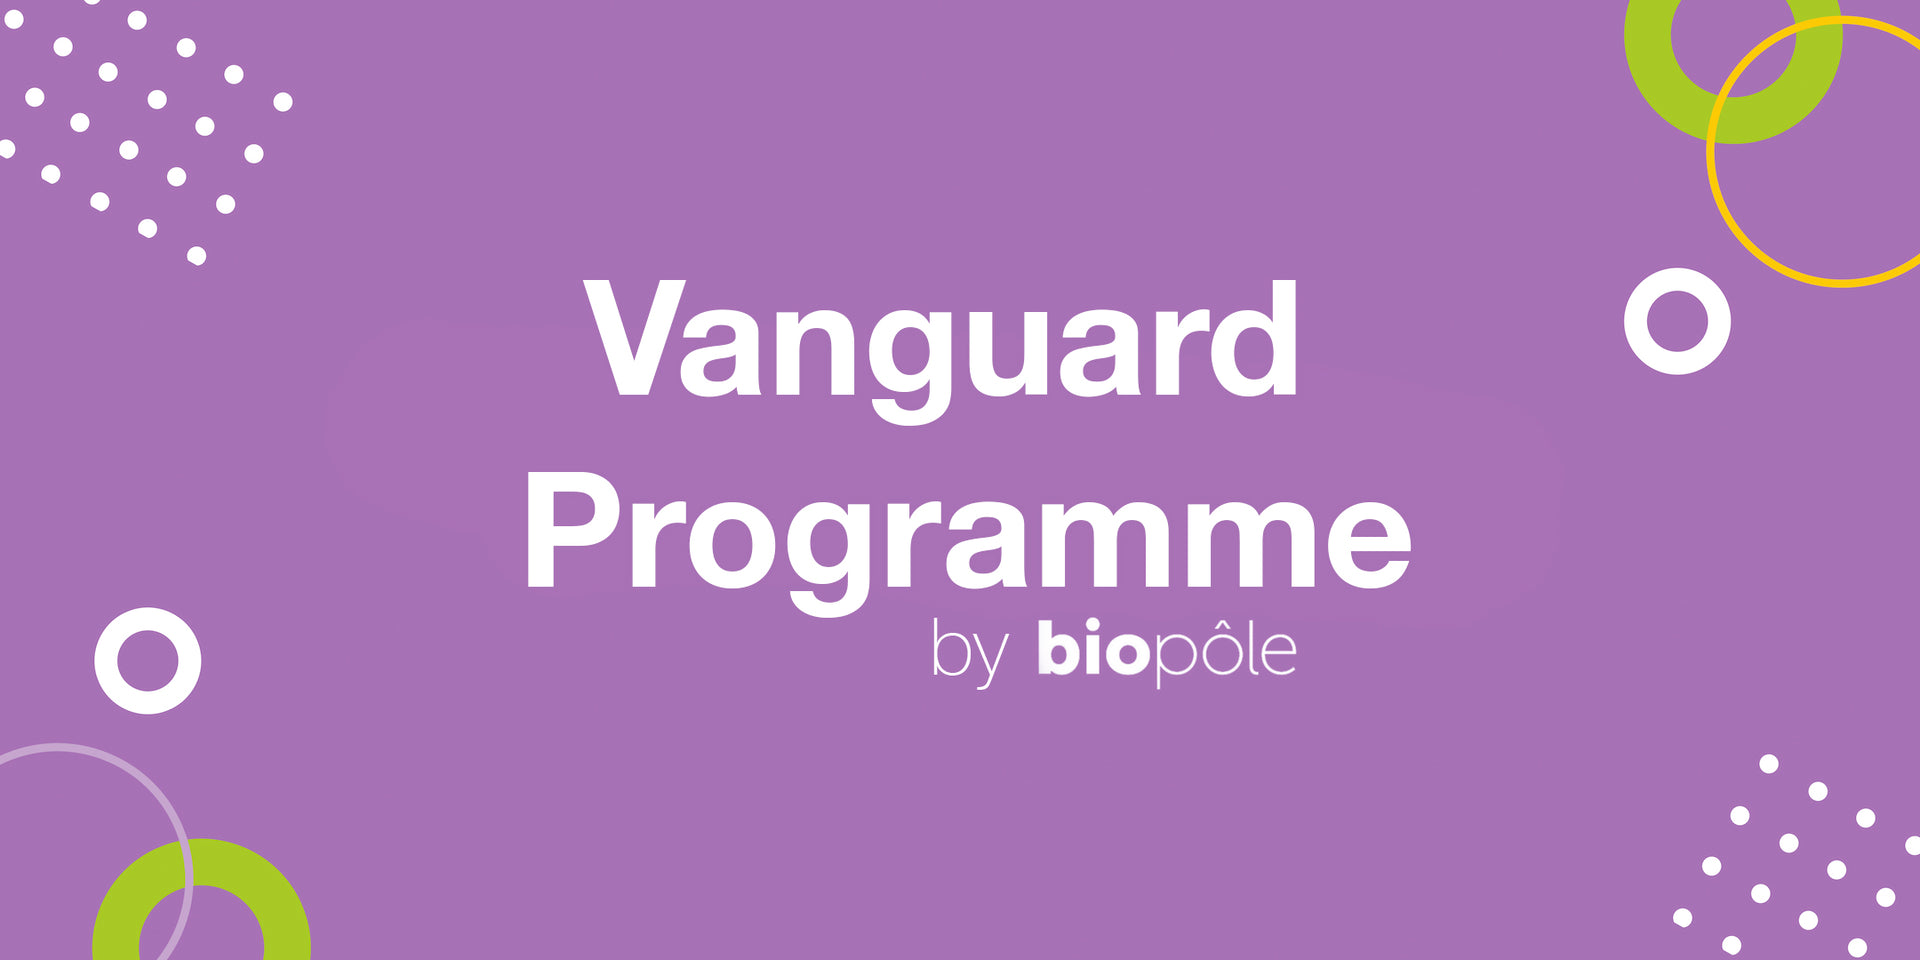 Gabi SmartCare awardee of the Vanguard Programme of the Digital Health Hub!